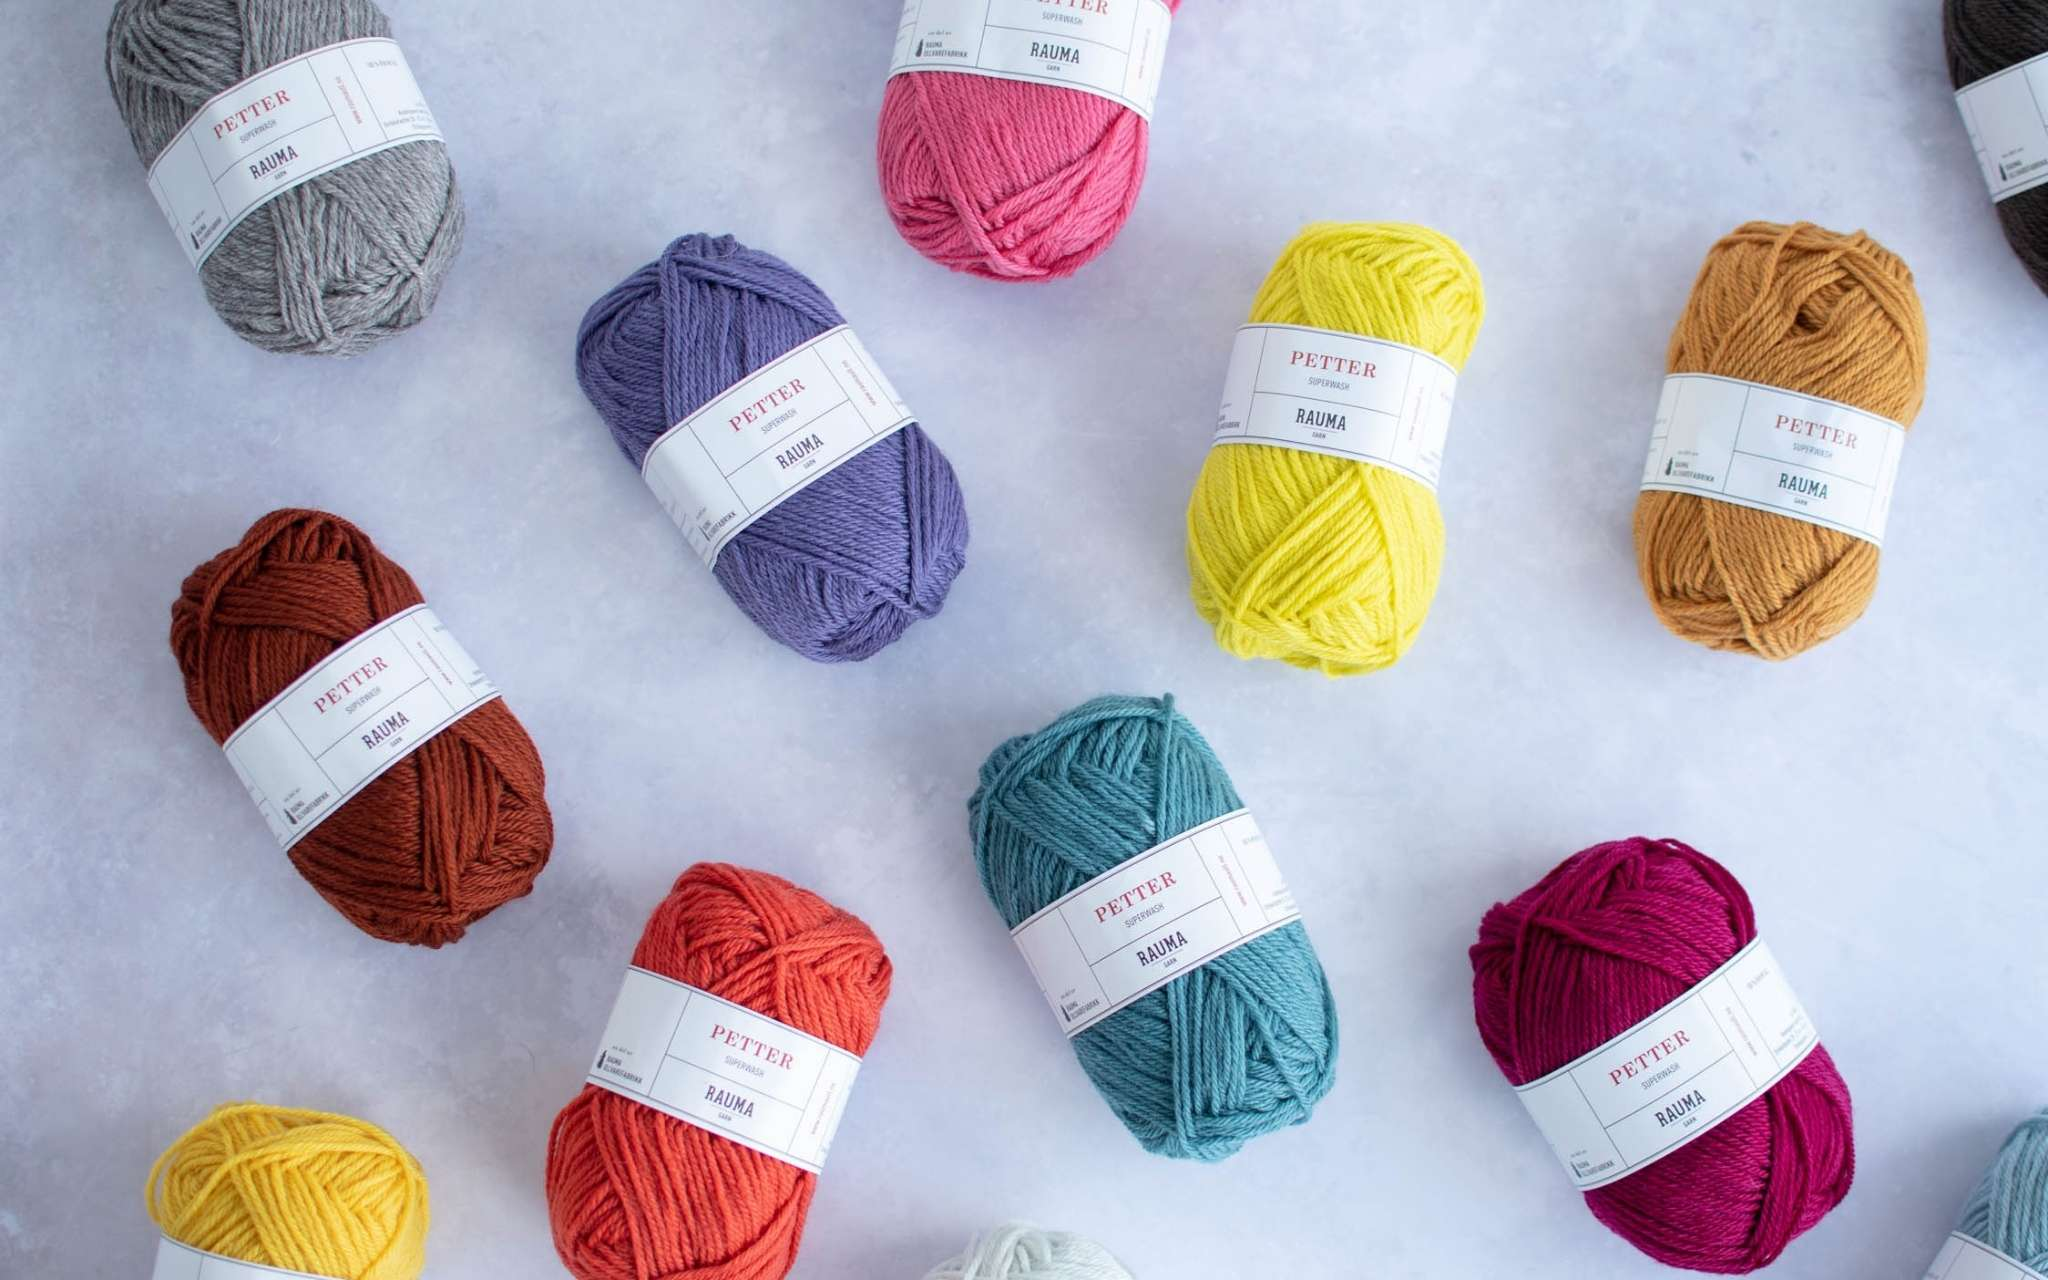 balls of brightly coloured yarn lie scrattered on a pale grey surface